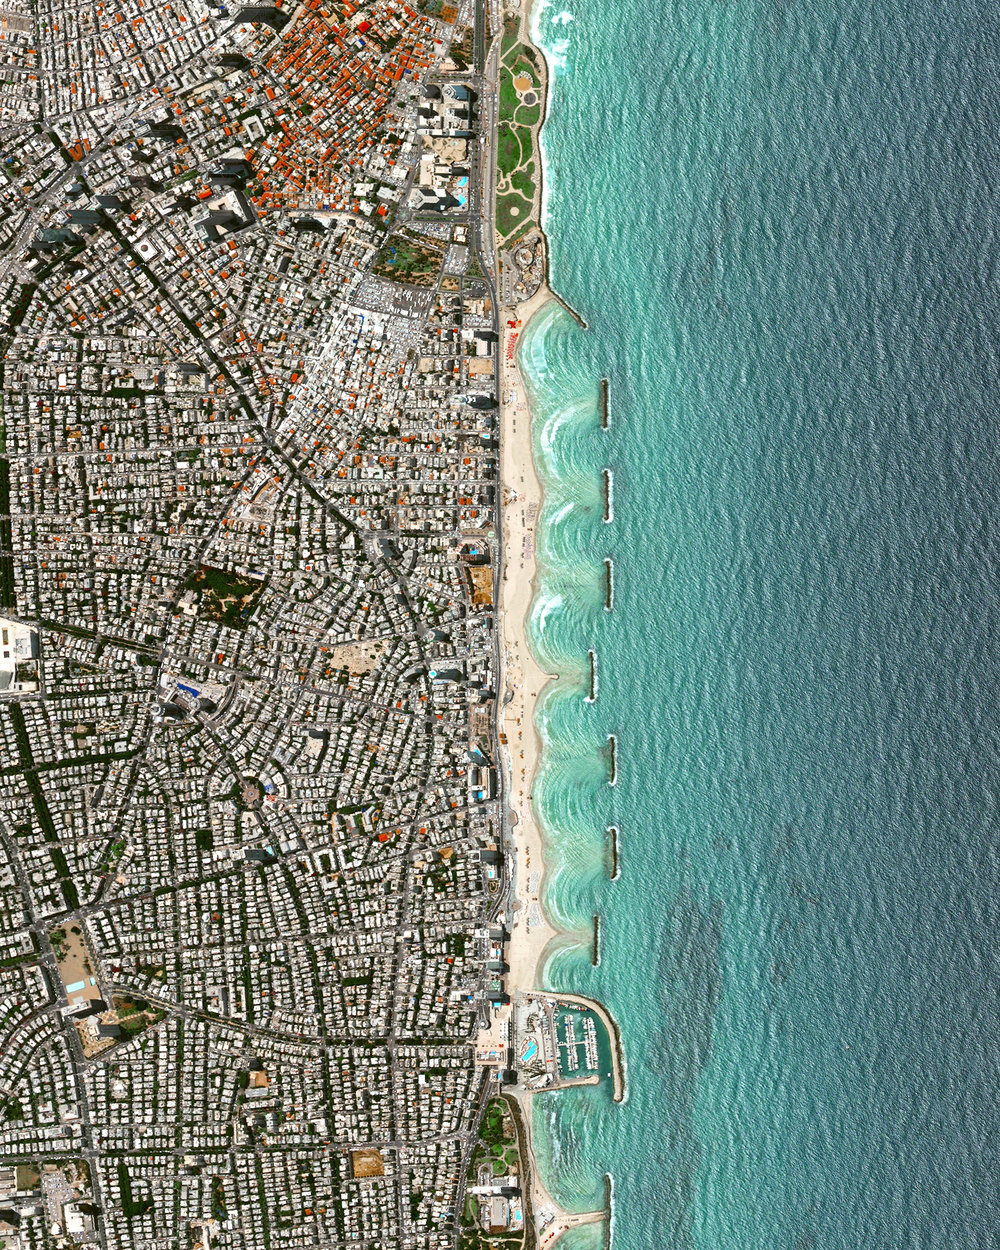 """Located on the coast of the Mediterranean Sea, Tel Aviv is the second most populous city in Israel and is recognized as the country's financial center and a major technology hub. With a city plan dating back to the 1920's, Tel Aviv was constructed with a hierarchical system of streets laid out in a grid and large blocks consisting of small-scale dwellings that surround central, open spaces.  32°04'42.0""""N, 34°46'08.4""""E  Source imagery: DigitalGlobe"""